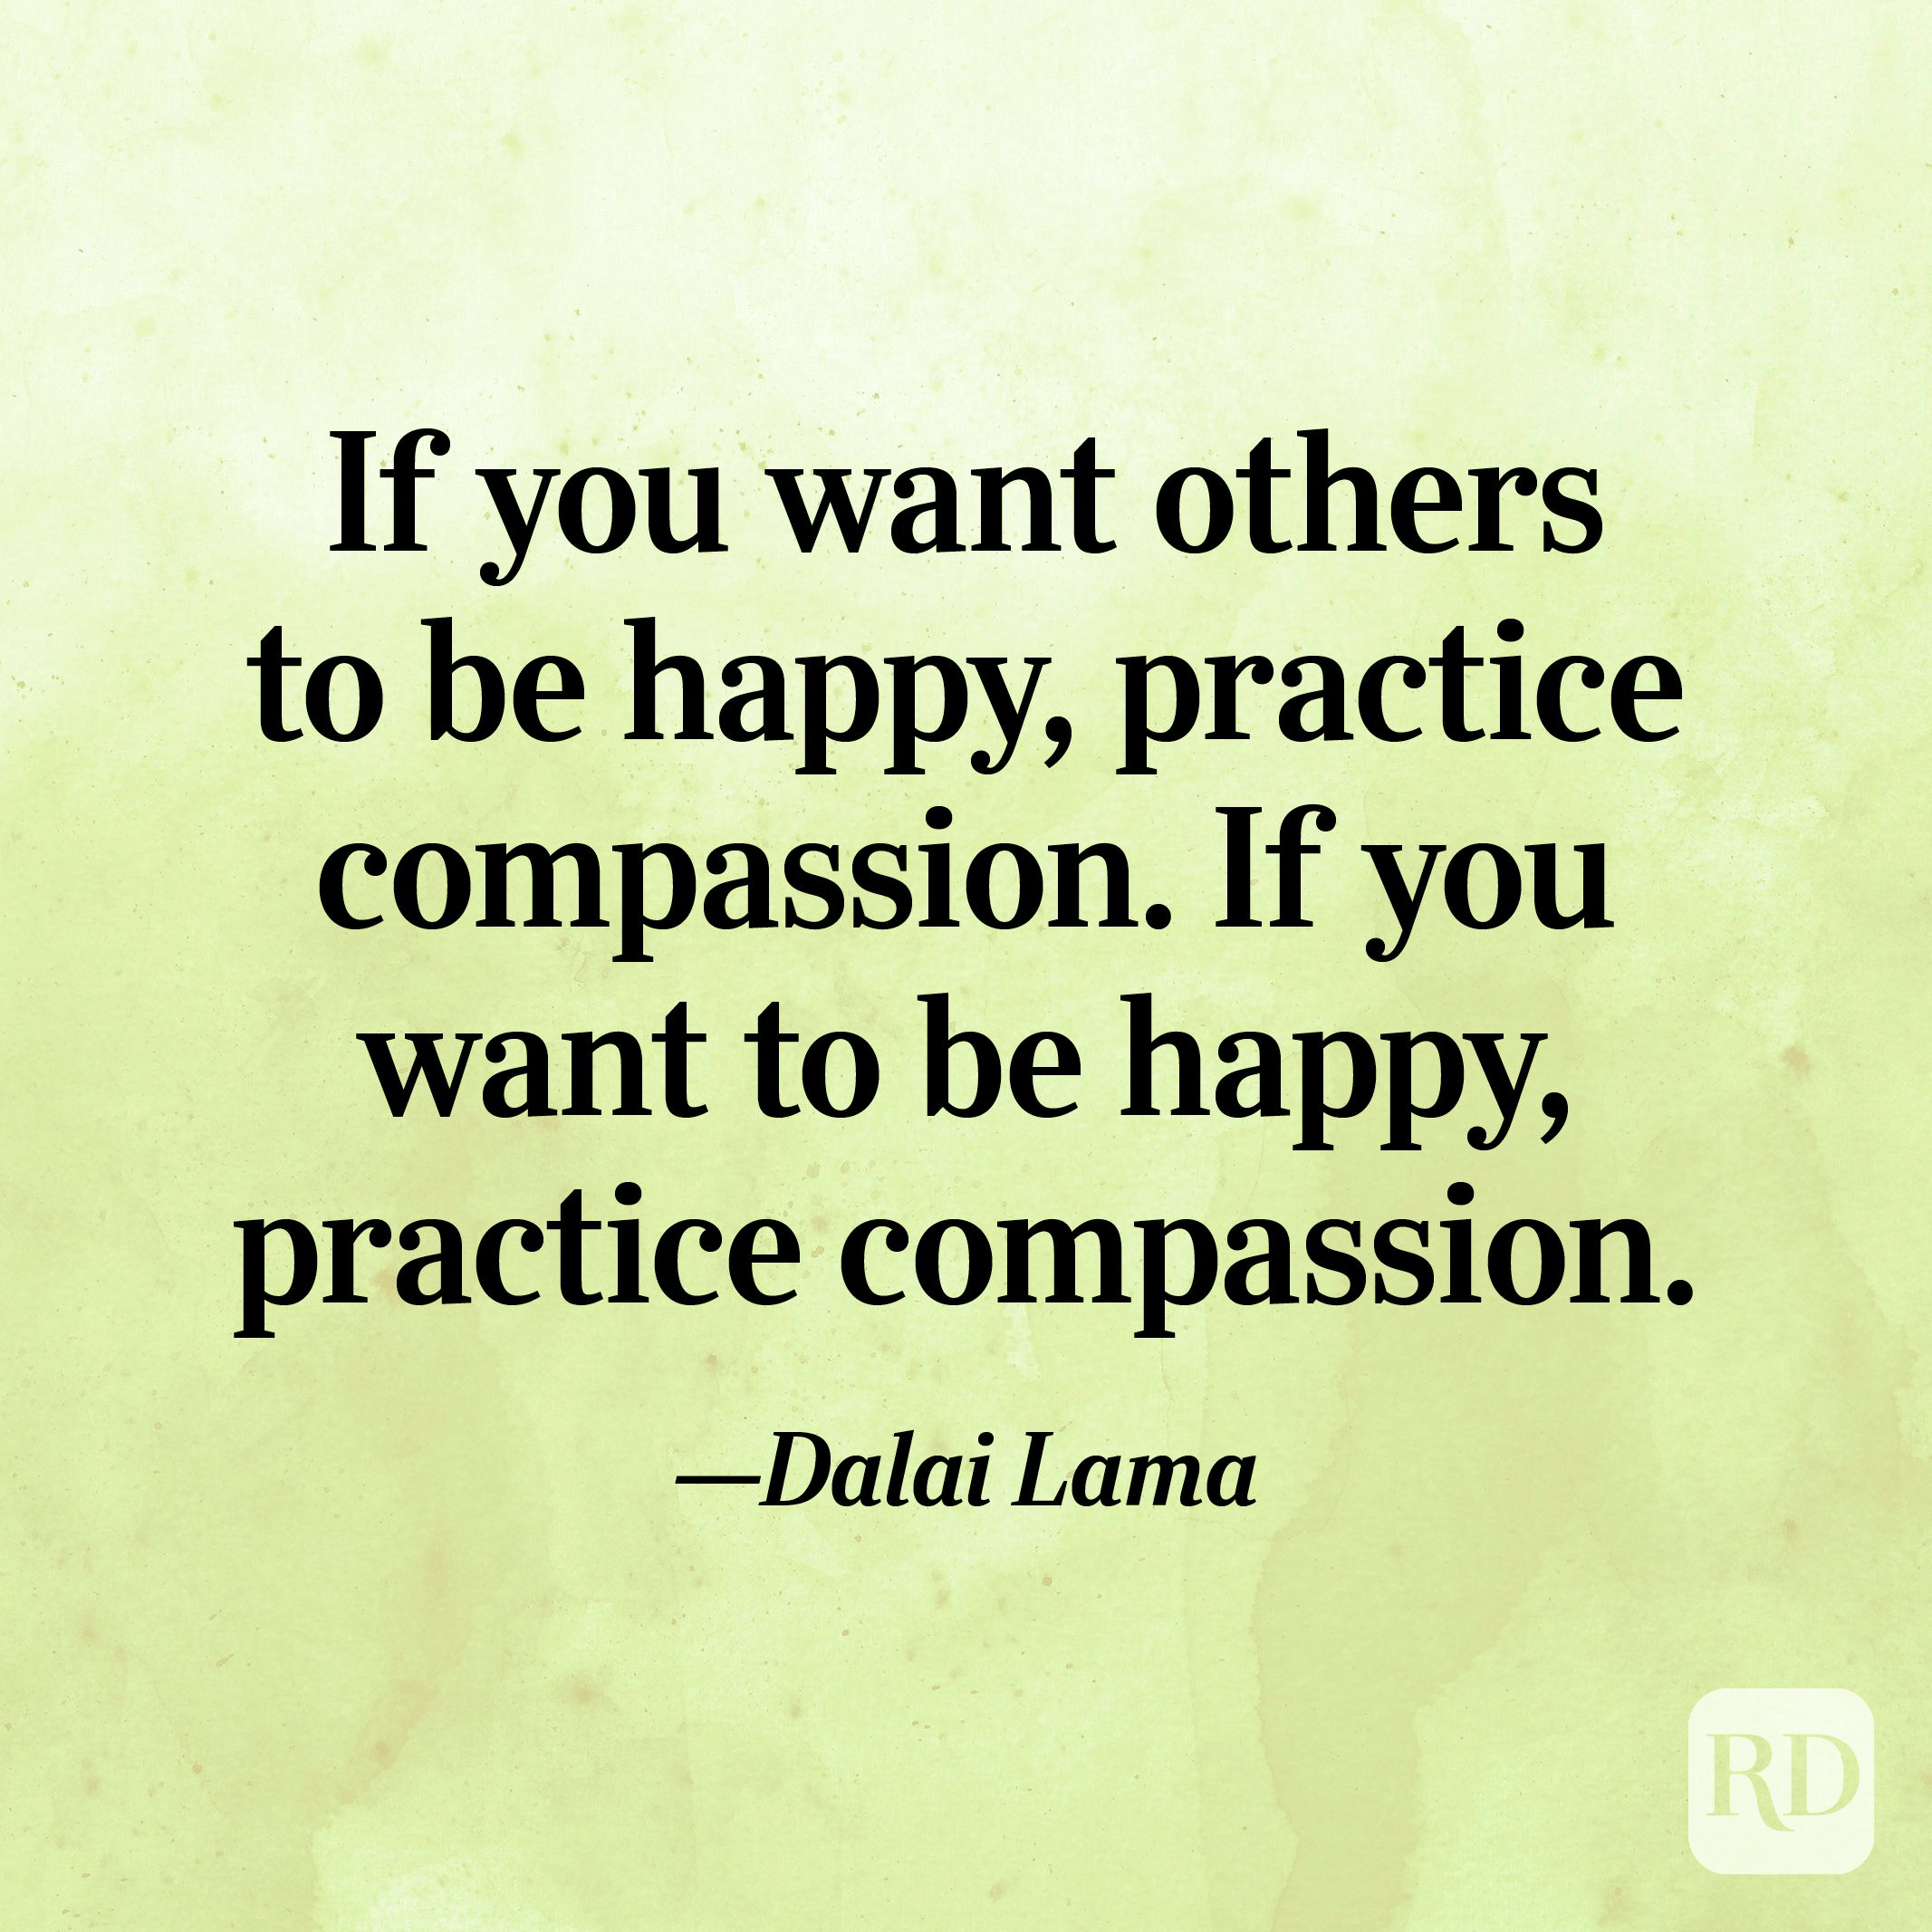 """""""If you want others to be happy, practice compassion. If you want to be happy, practice compassion."""" —Dalai Lama"""